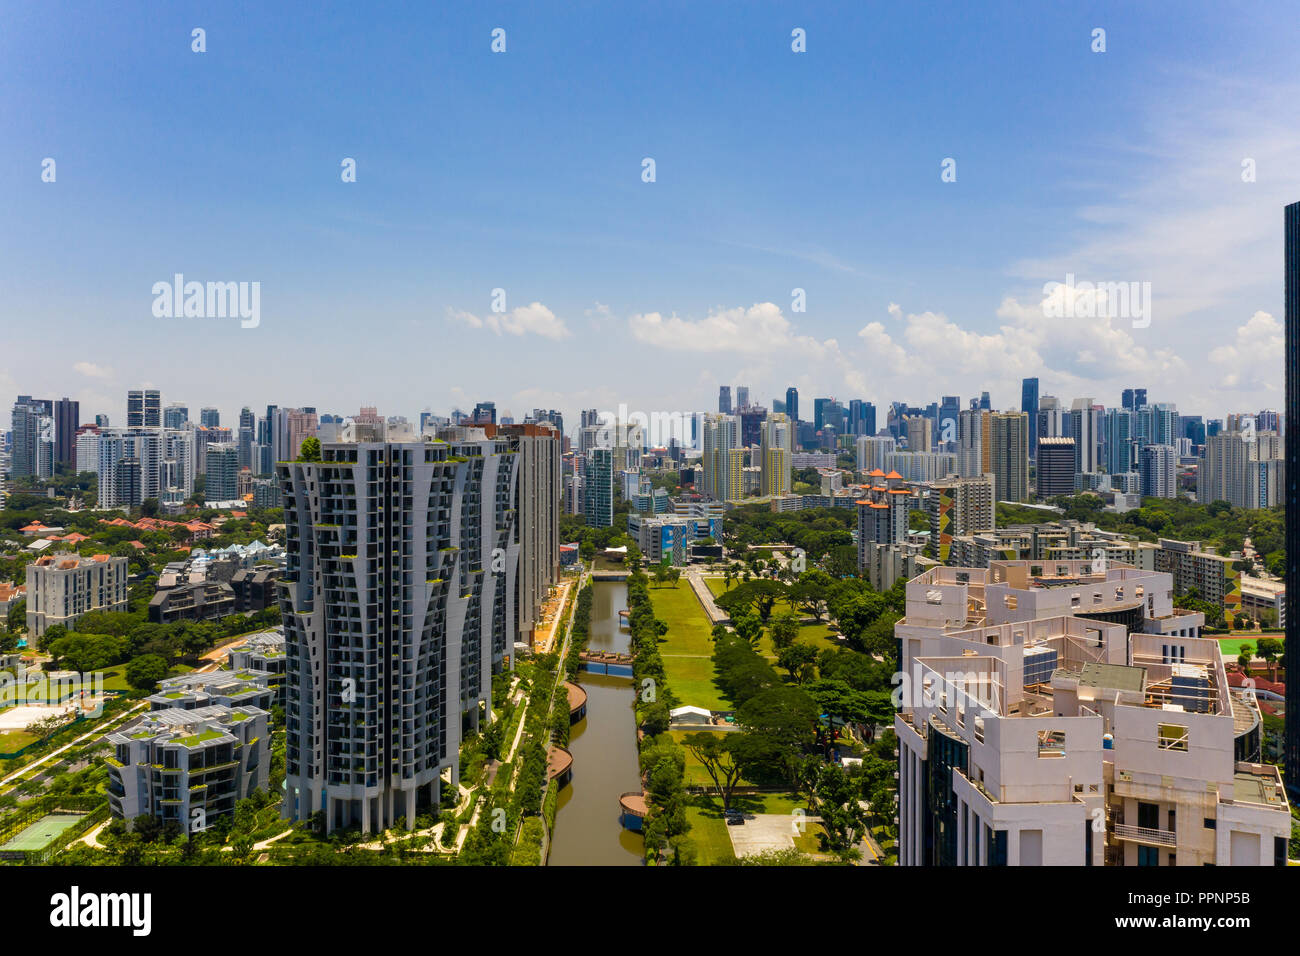 An aerial view of Alexandra Canal linear park. Active, Beautiful and Clean (ABC) Water Programme undertaken by the Public Utilities Board of Singapore - Stock Image